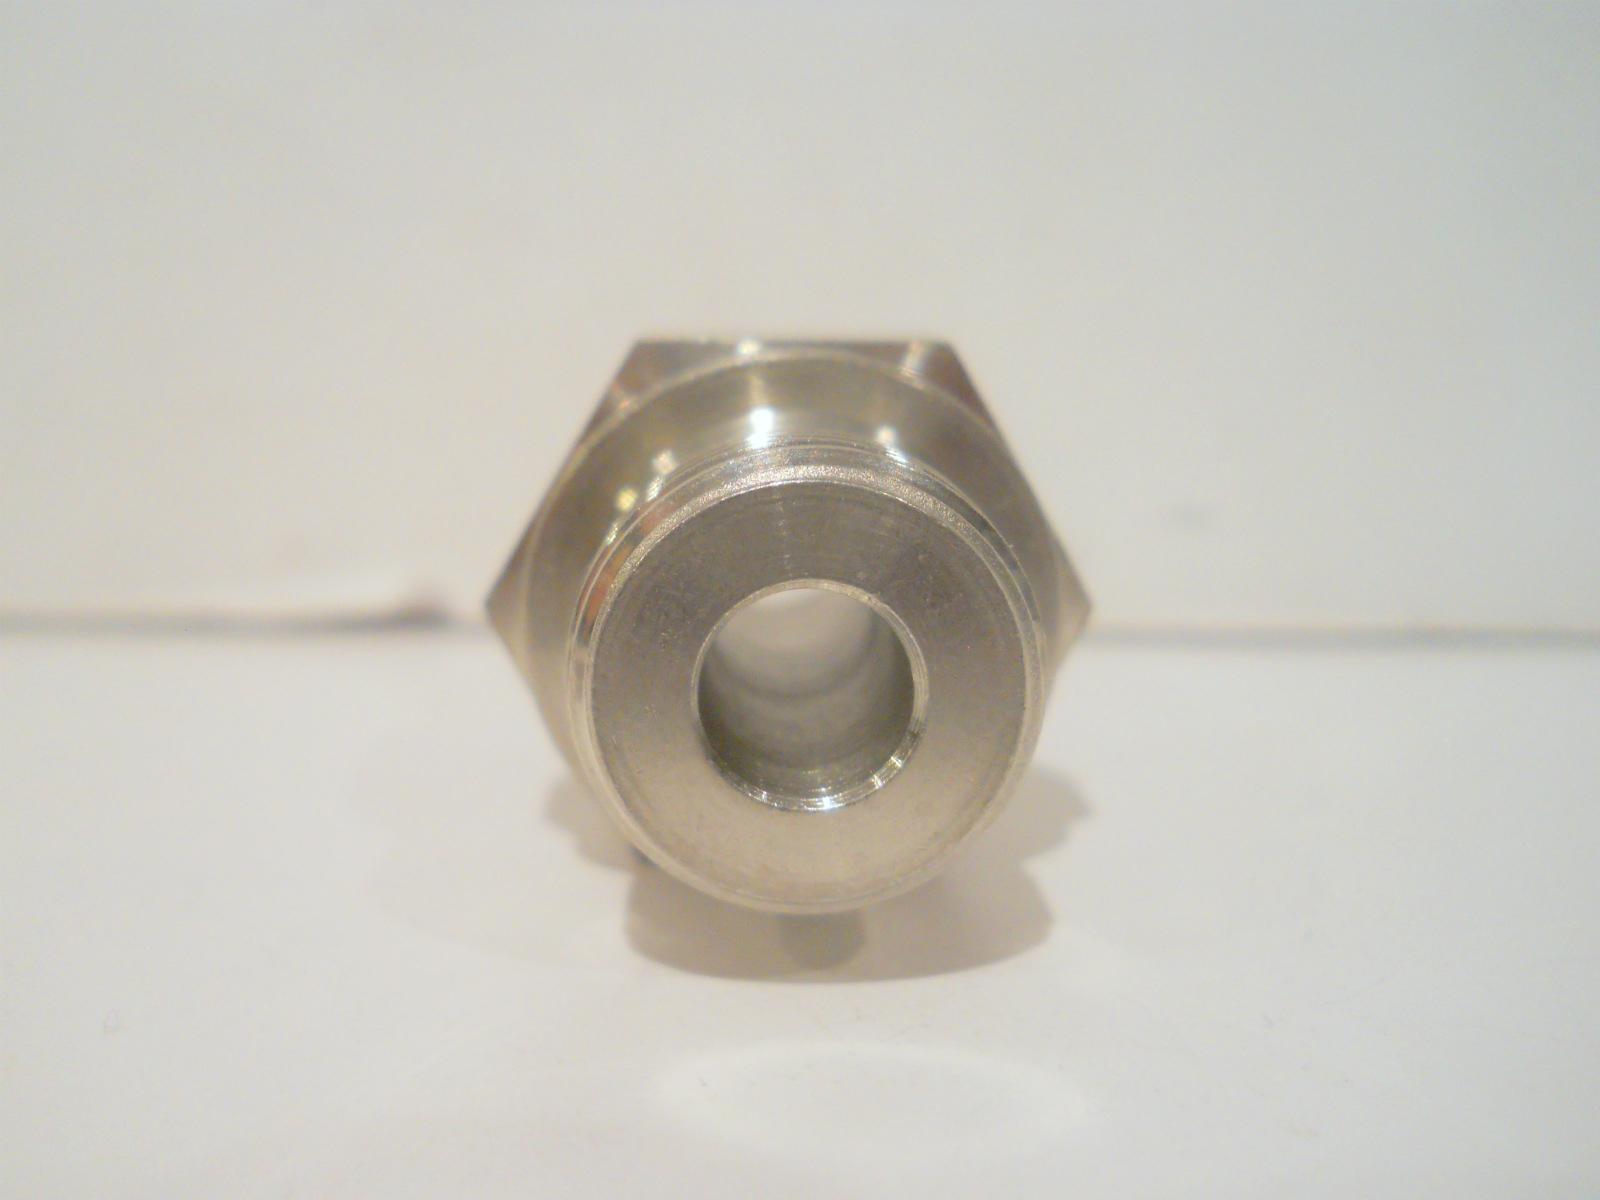 New swagelok stainless steel quot tube iso male